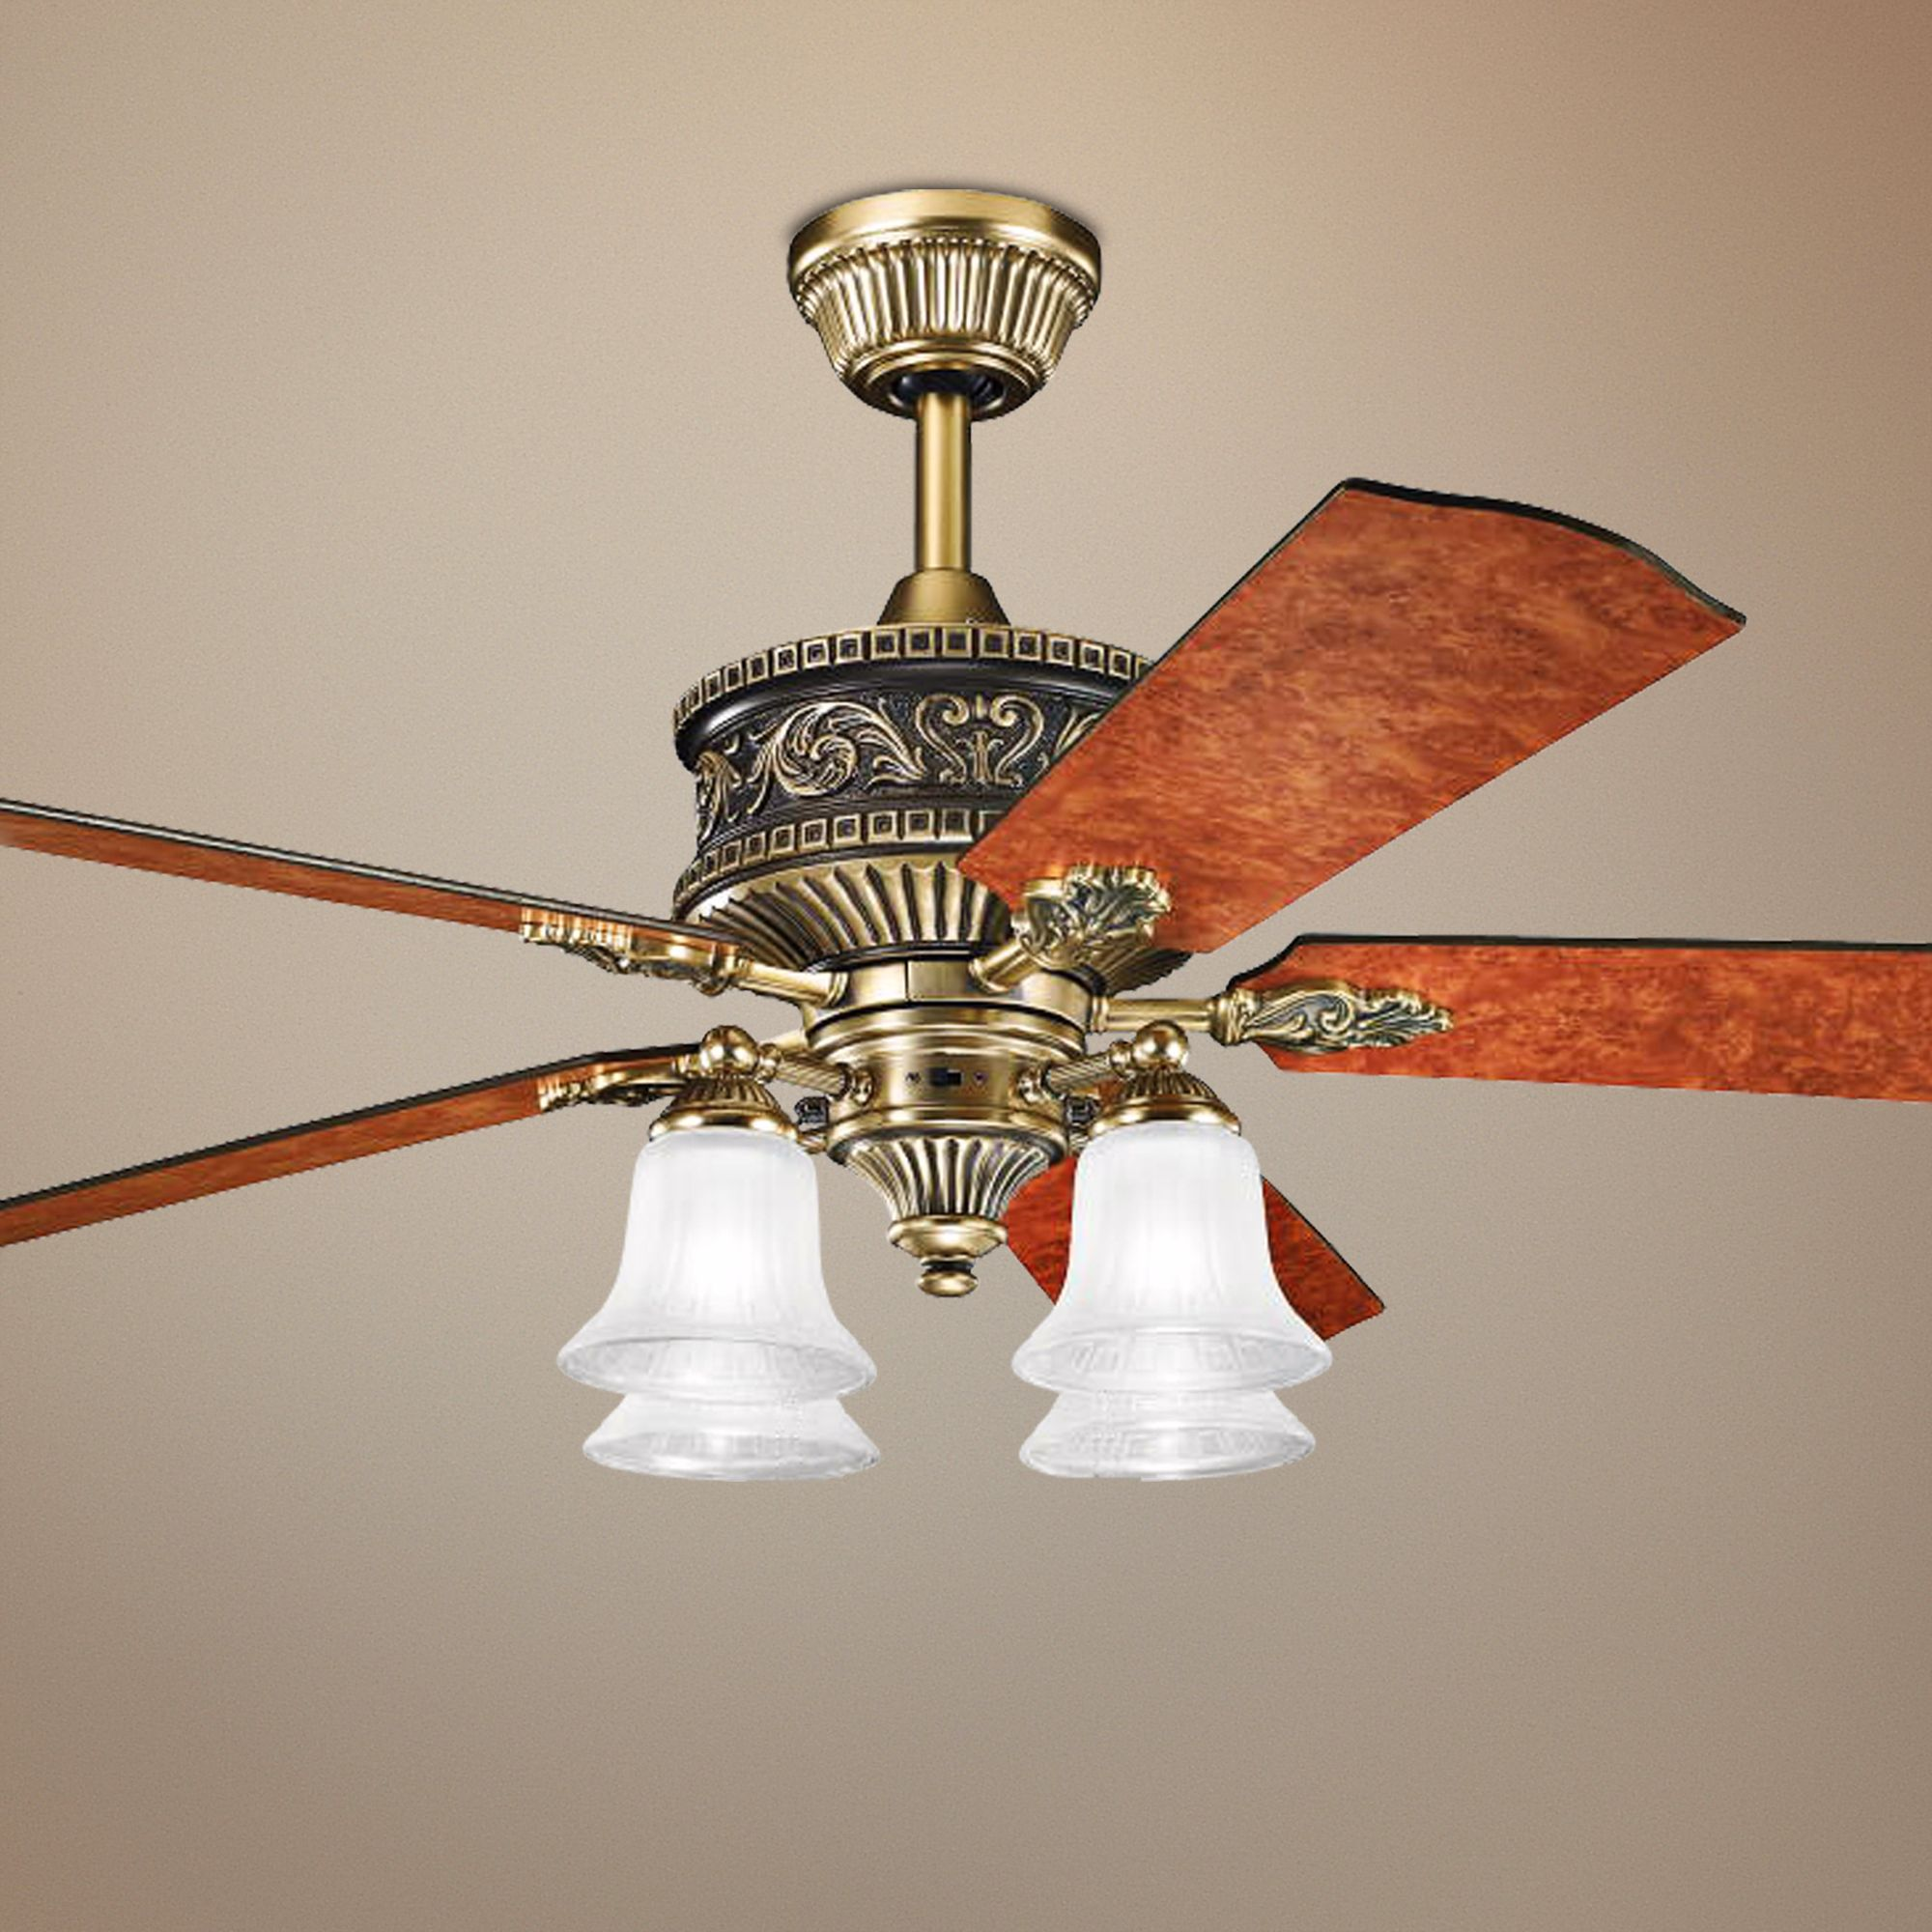 Vintage Ceiling Fans With Lights : Antique brass ceiling fan light kit roselawnlutheran